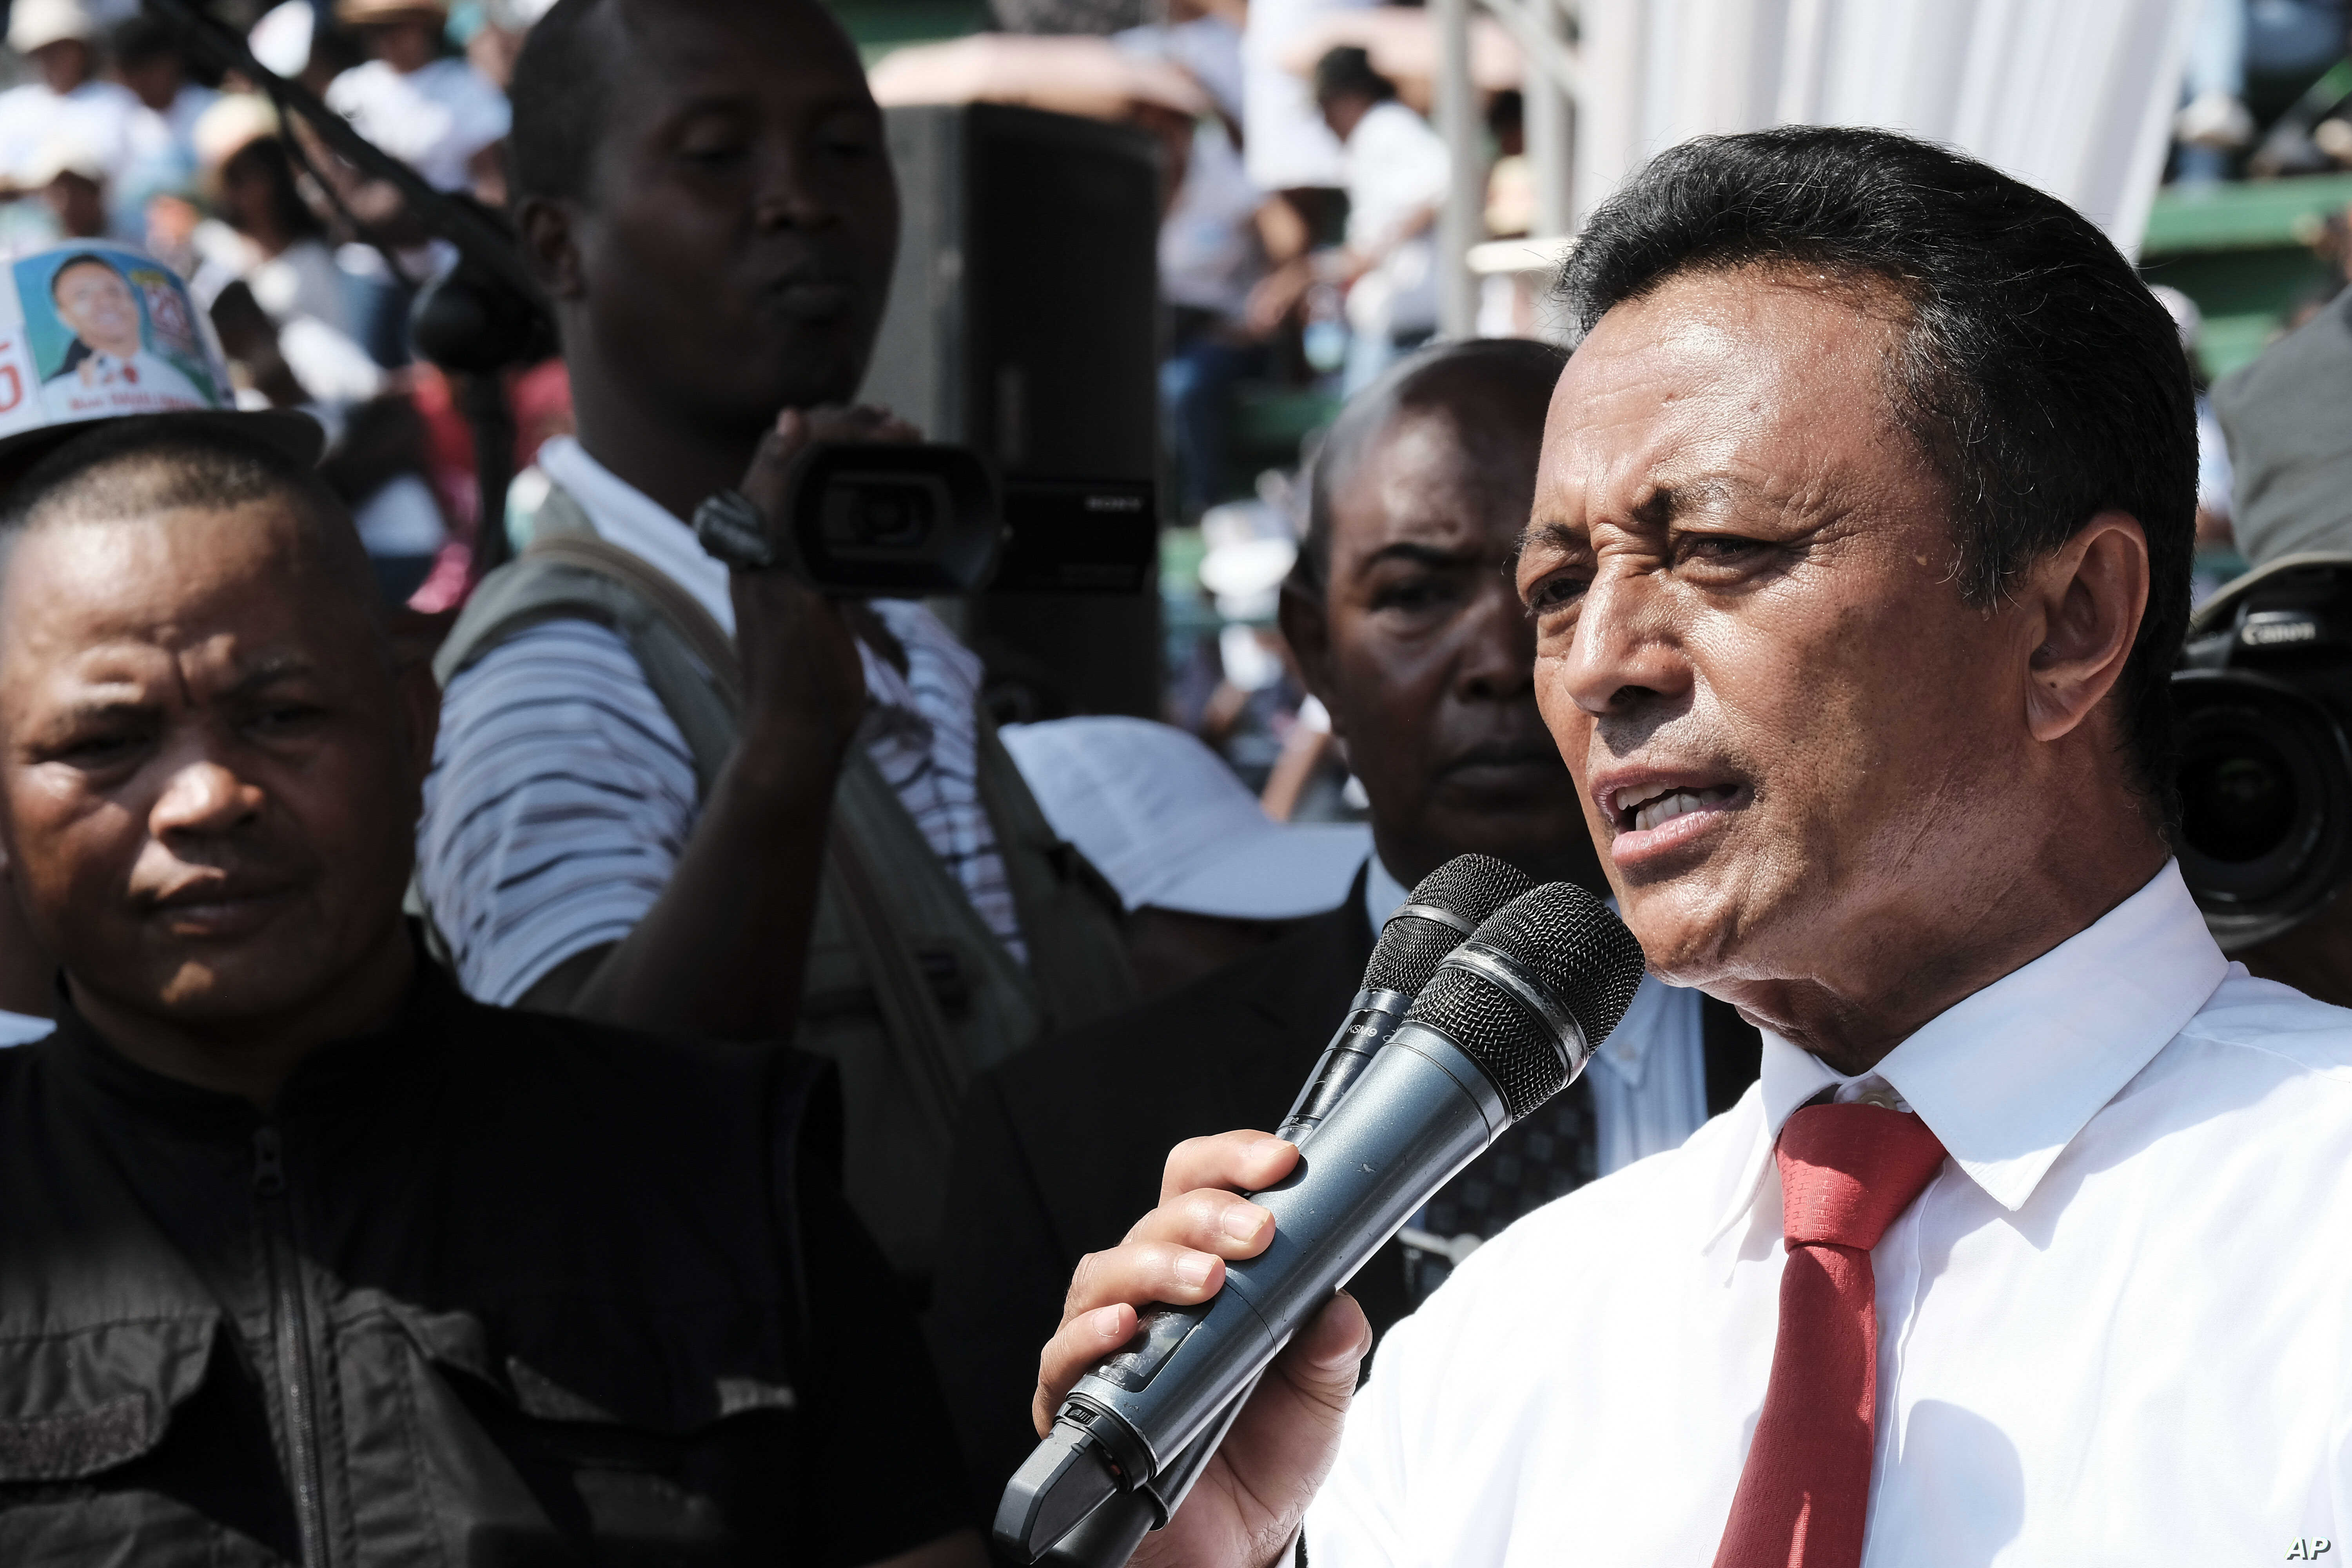 Presidential hopeful Marc Ravalomanana attends an election rally in Antananarivo, Madagascar, Nov. 3, 2018.